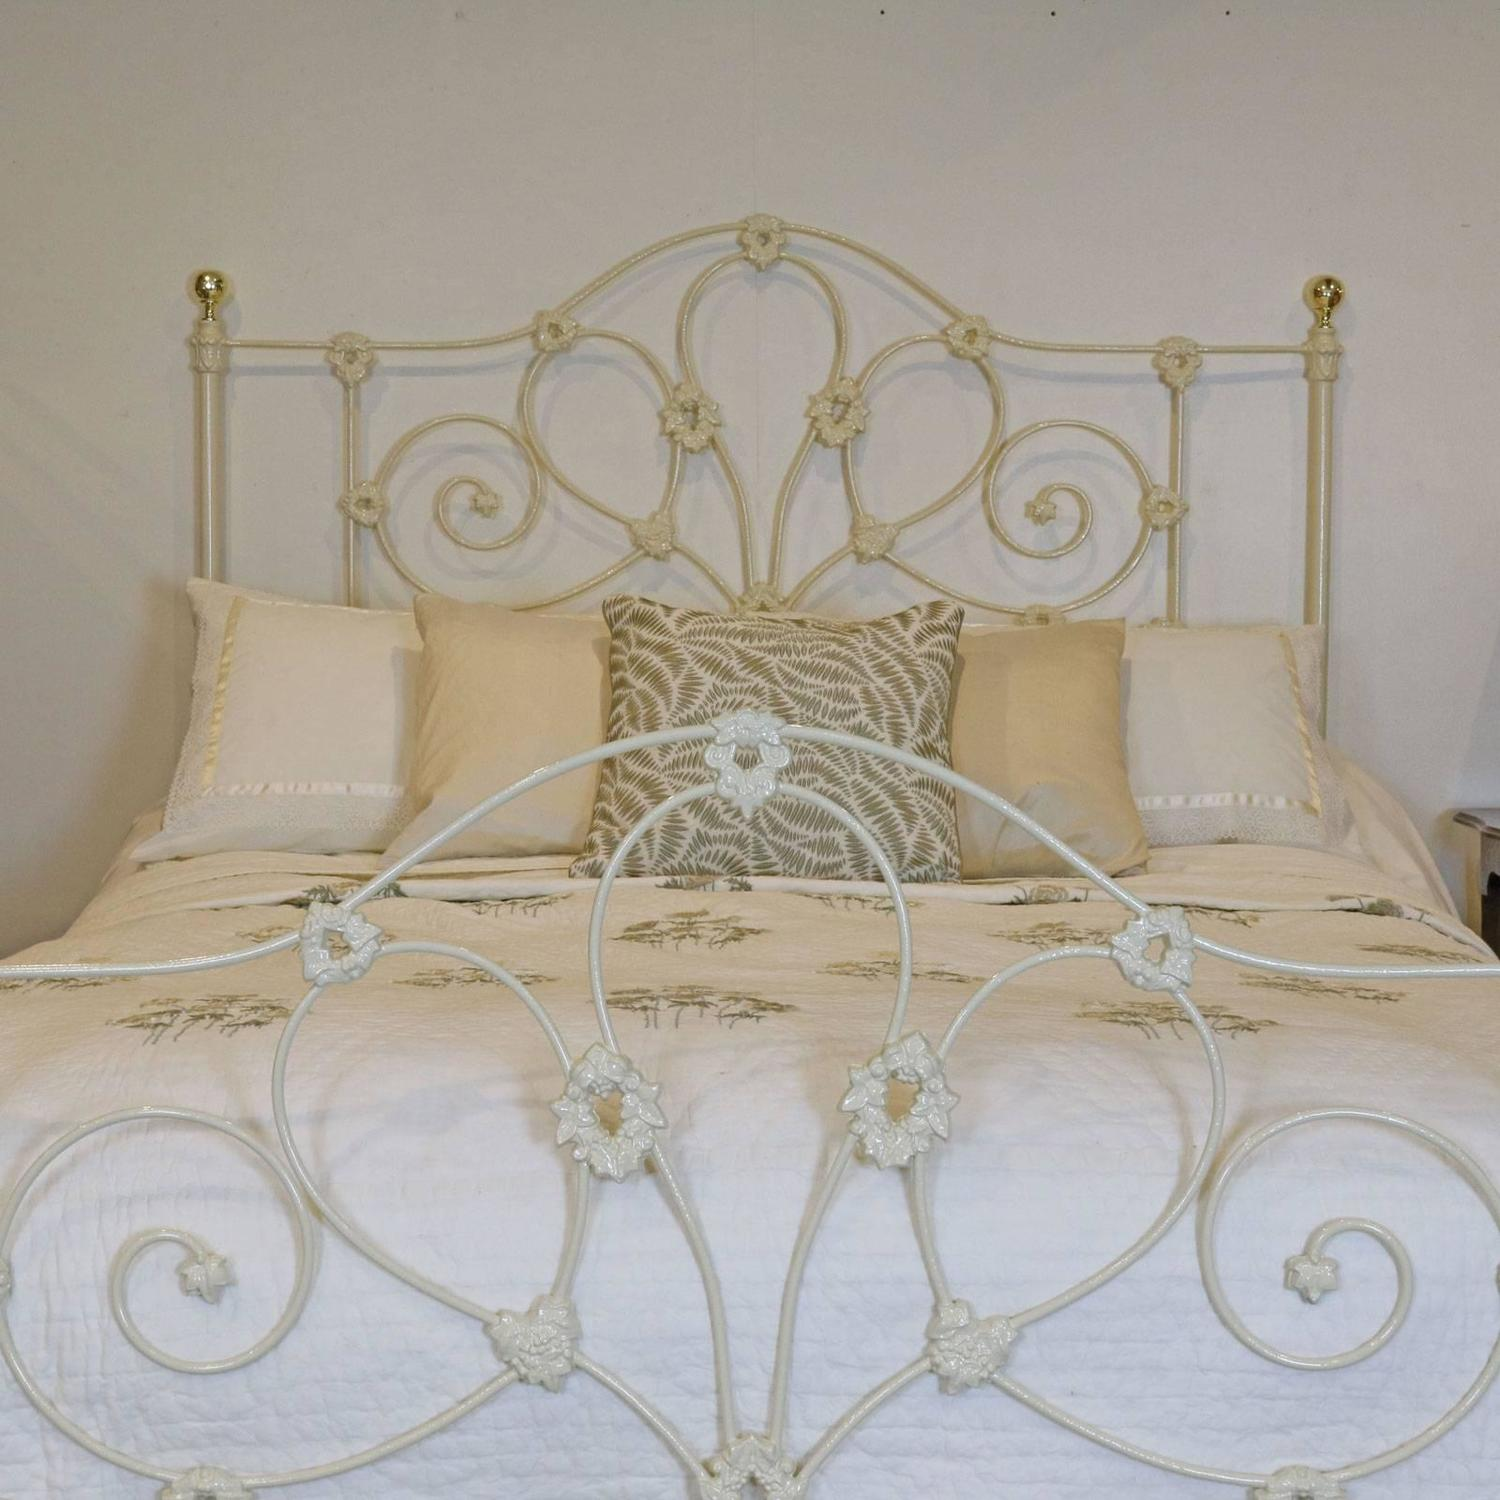 Victorian Cast Iron Beds : Mid victorian cast iron bed at stdibs